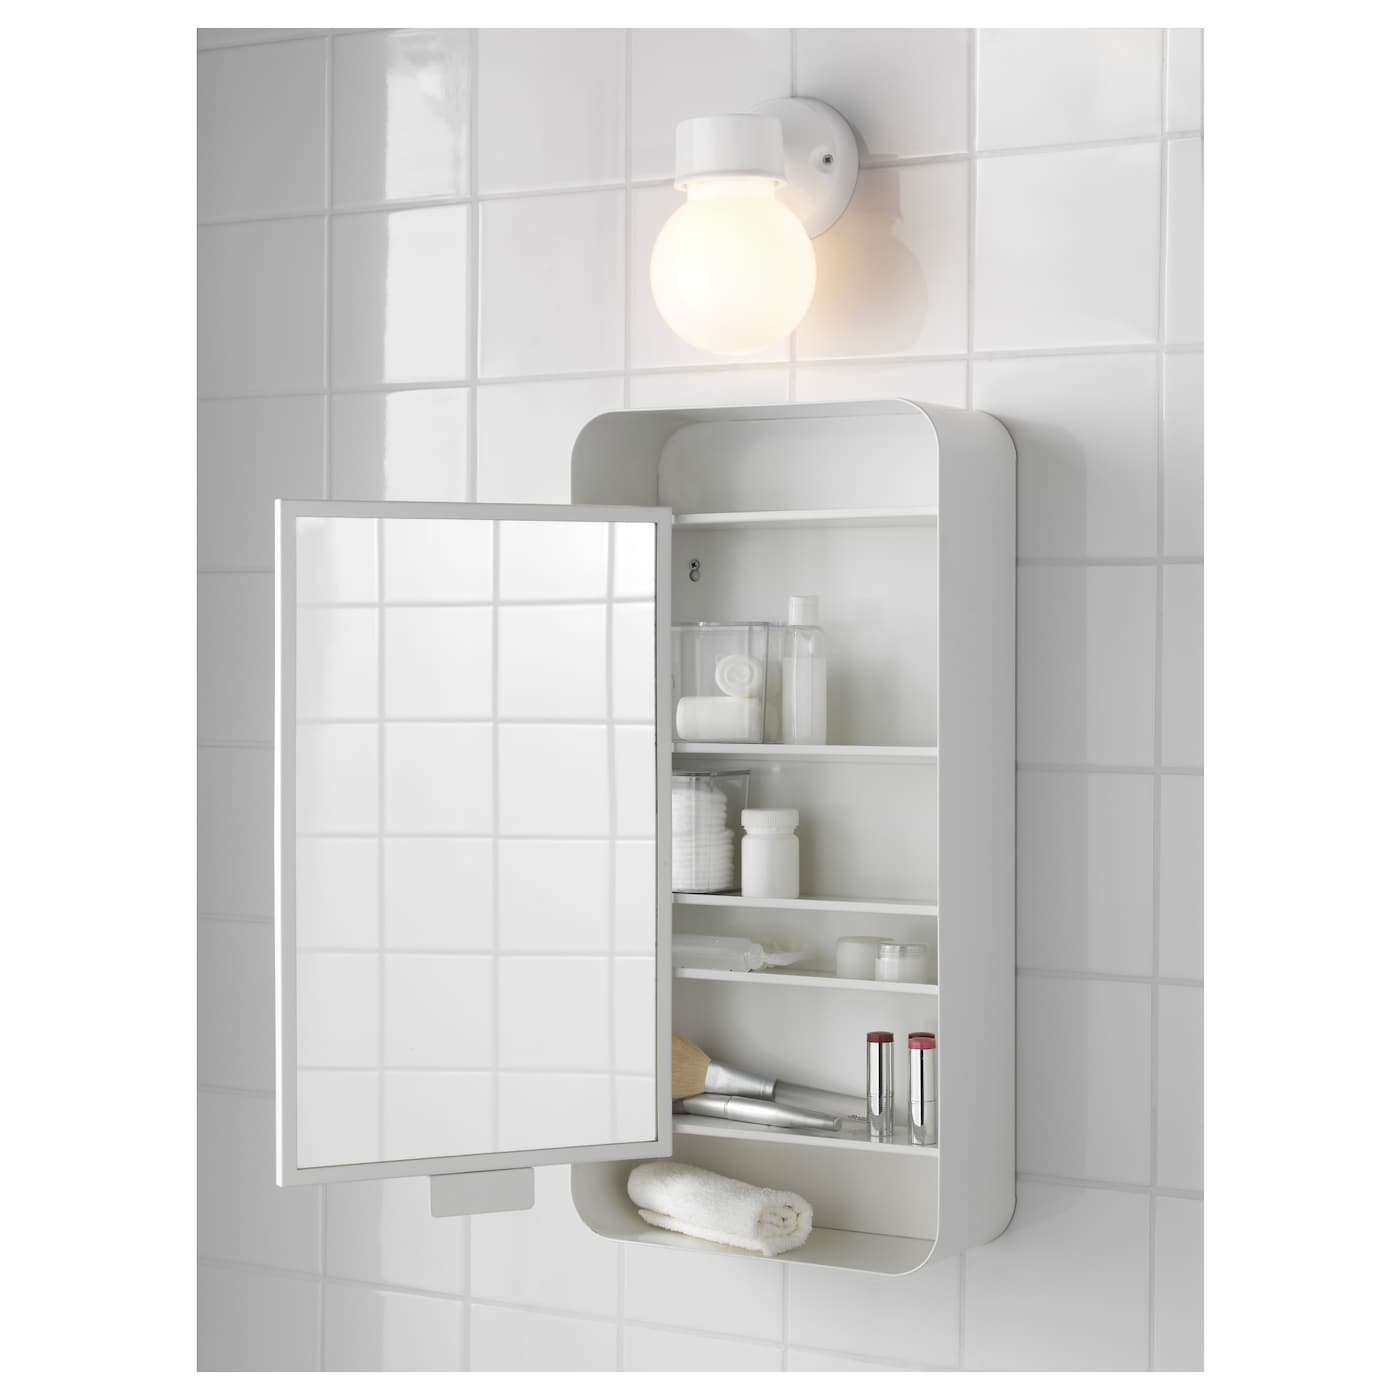 Gunnern mirror cabinet with 1 door white 31x62 cm ikea Bathroom mirror cabinet design